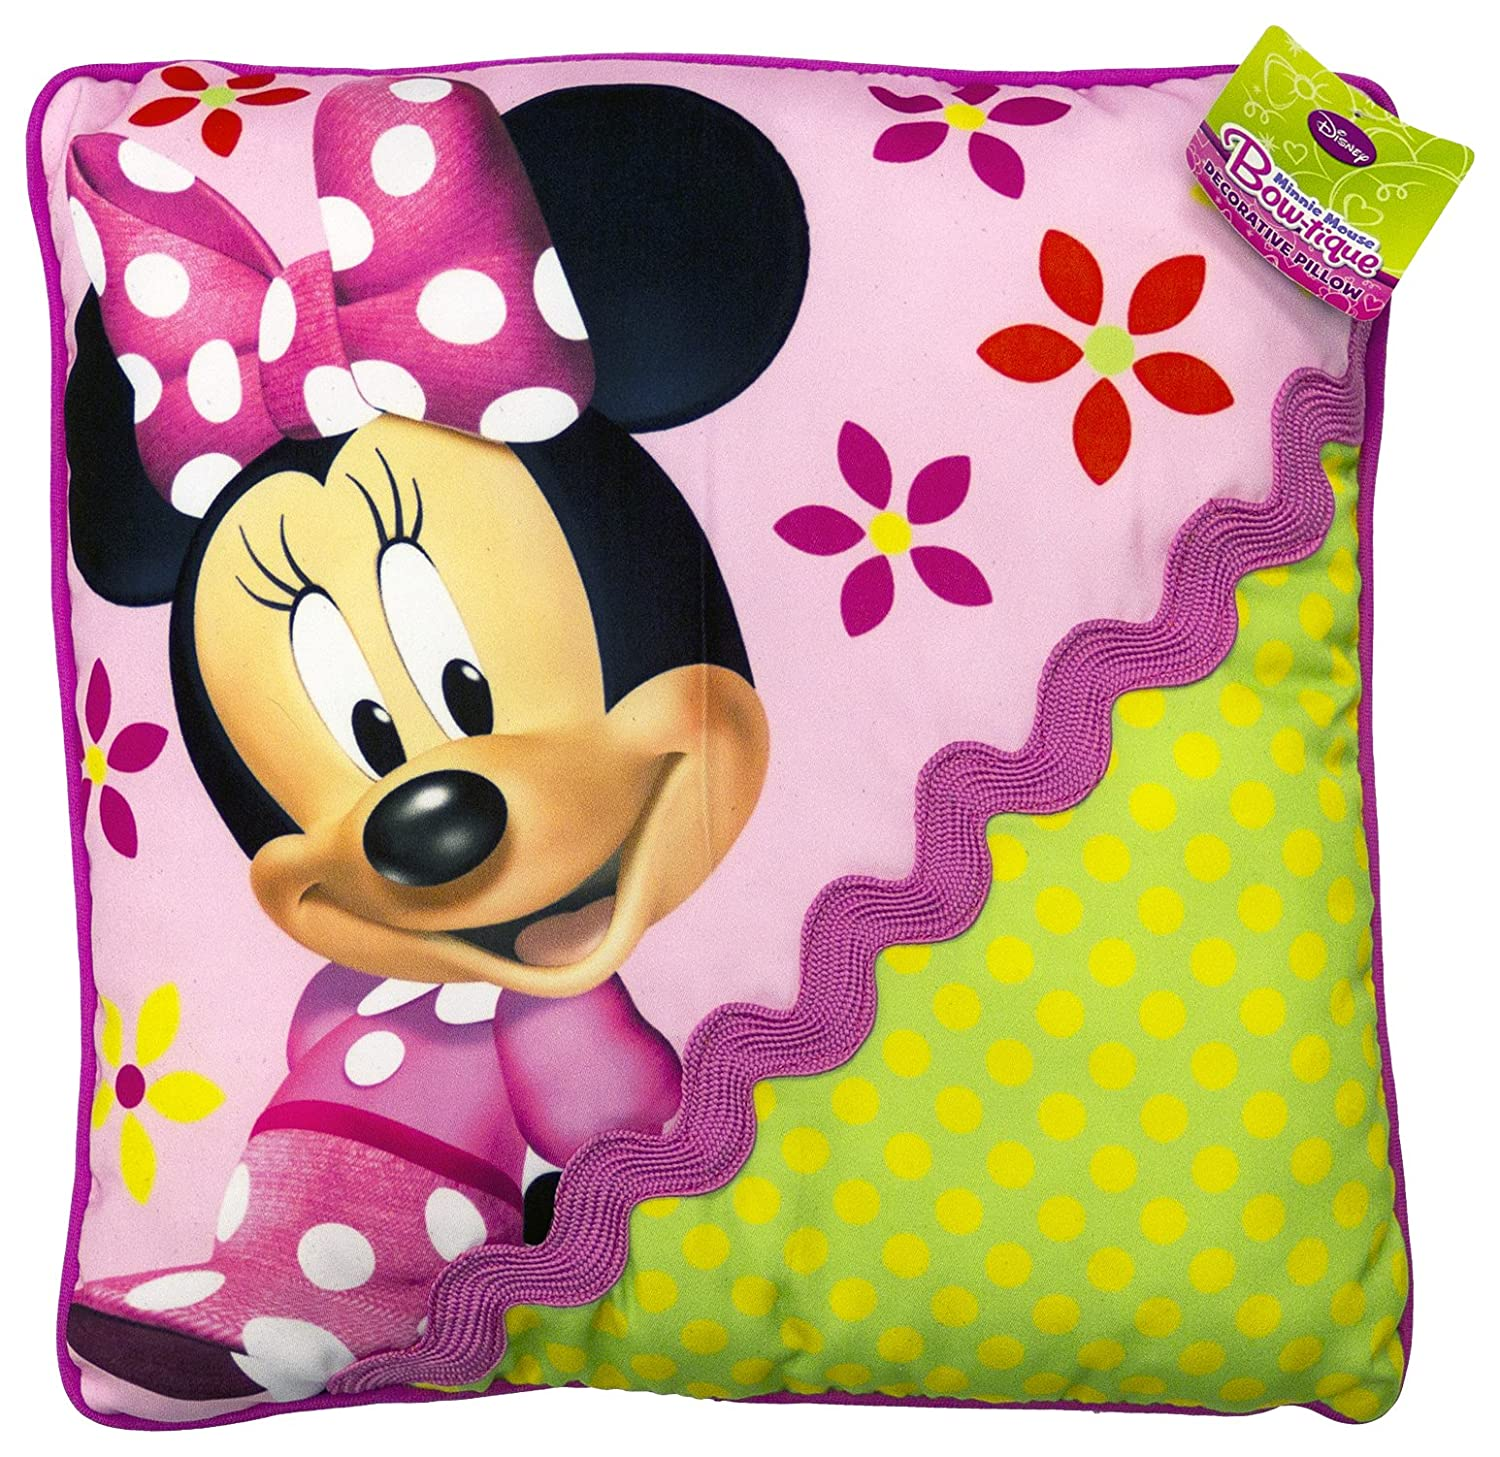 Disney Minnie Mouse Bowtique Garden Party Decorative Pillow